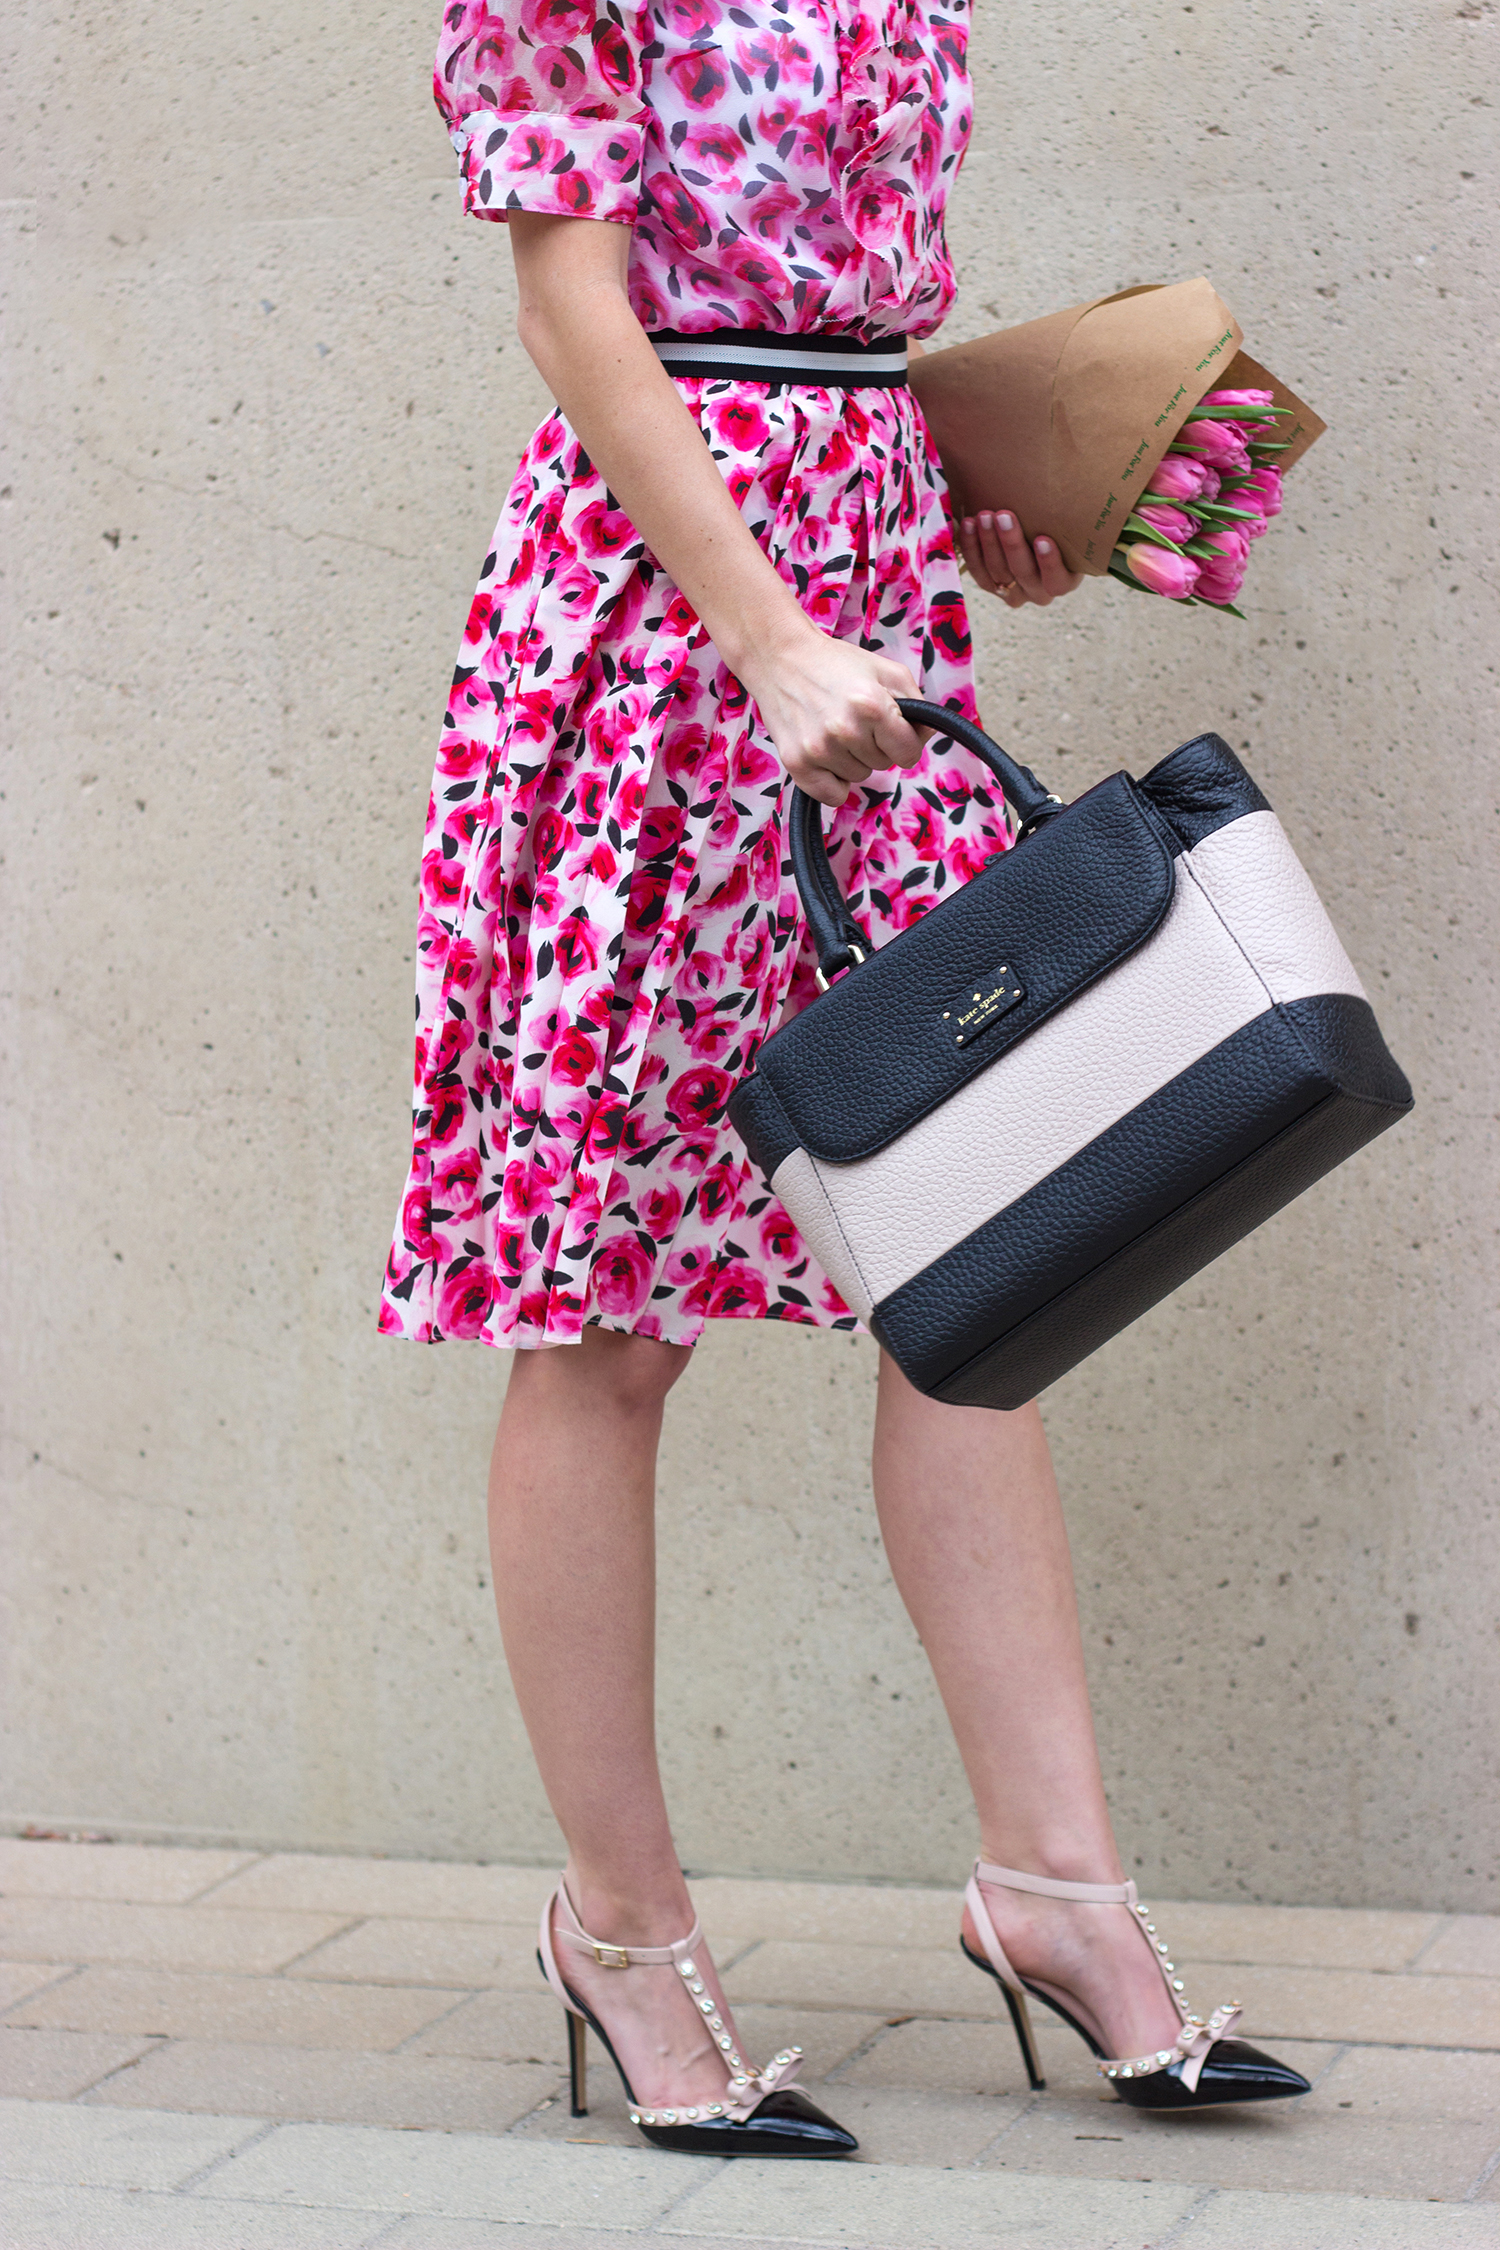 livvyland-blog-olivia-watson-austin-texas-fashion-blogger-kate-spade-broome-street-everyday-tee-white-rose-pleated-skirt-pink-black-spring-outfit-small-henly-handbag